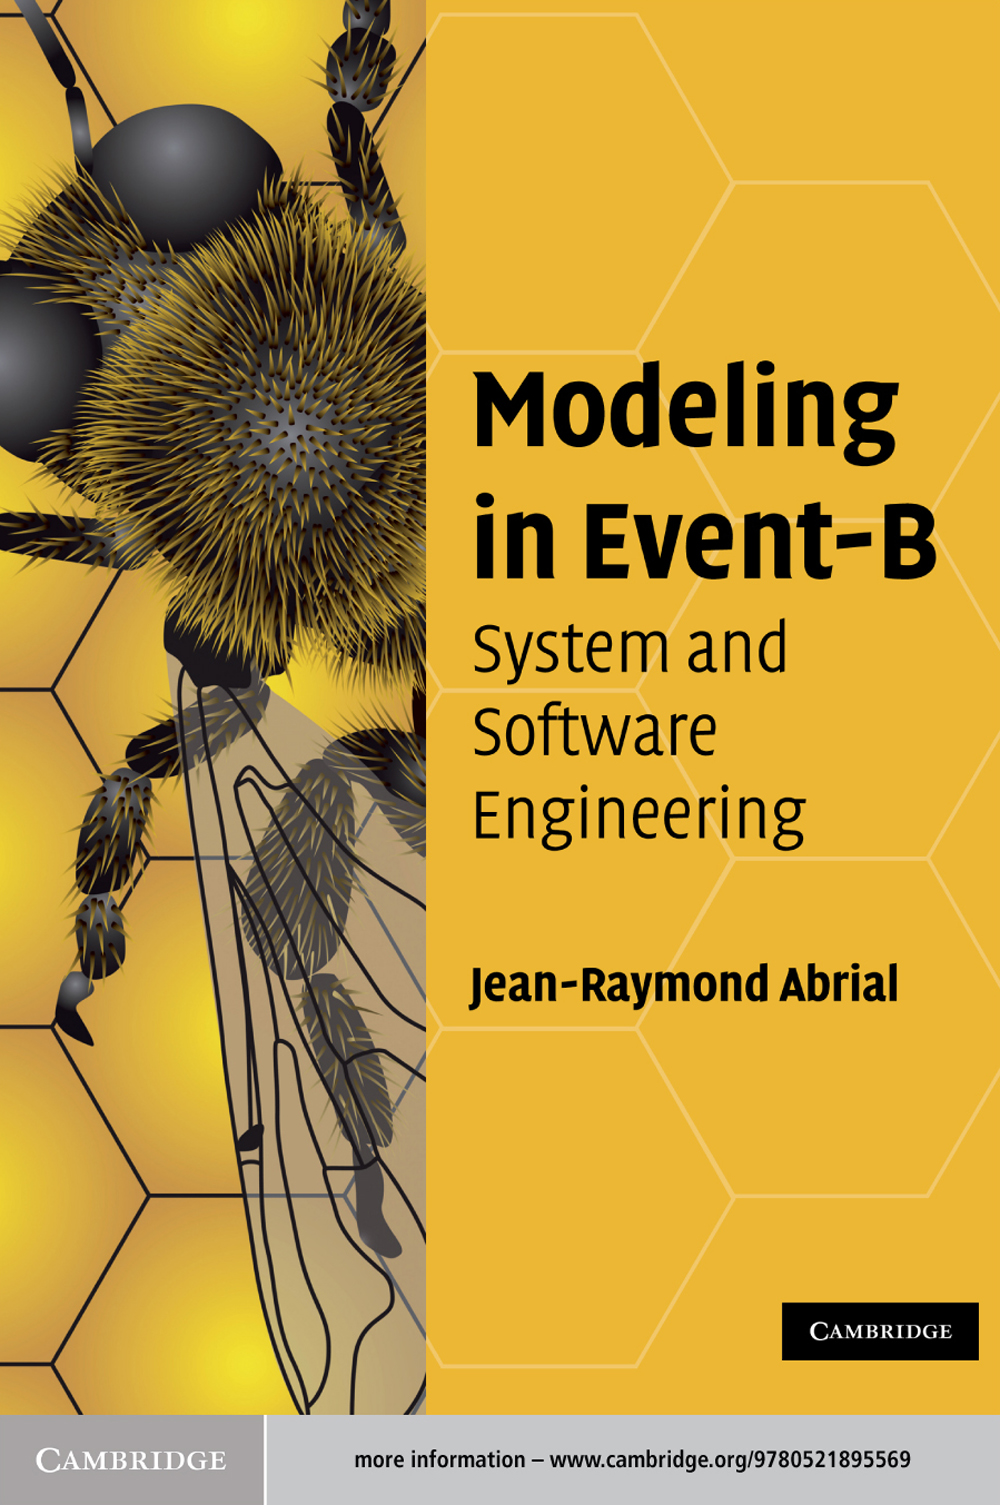 Modeling in Event-B System and Software Engineering